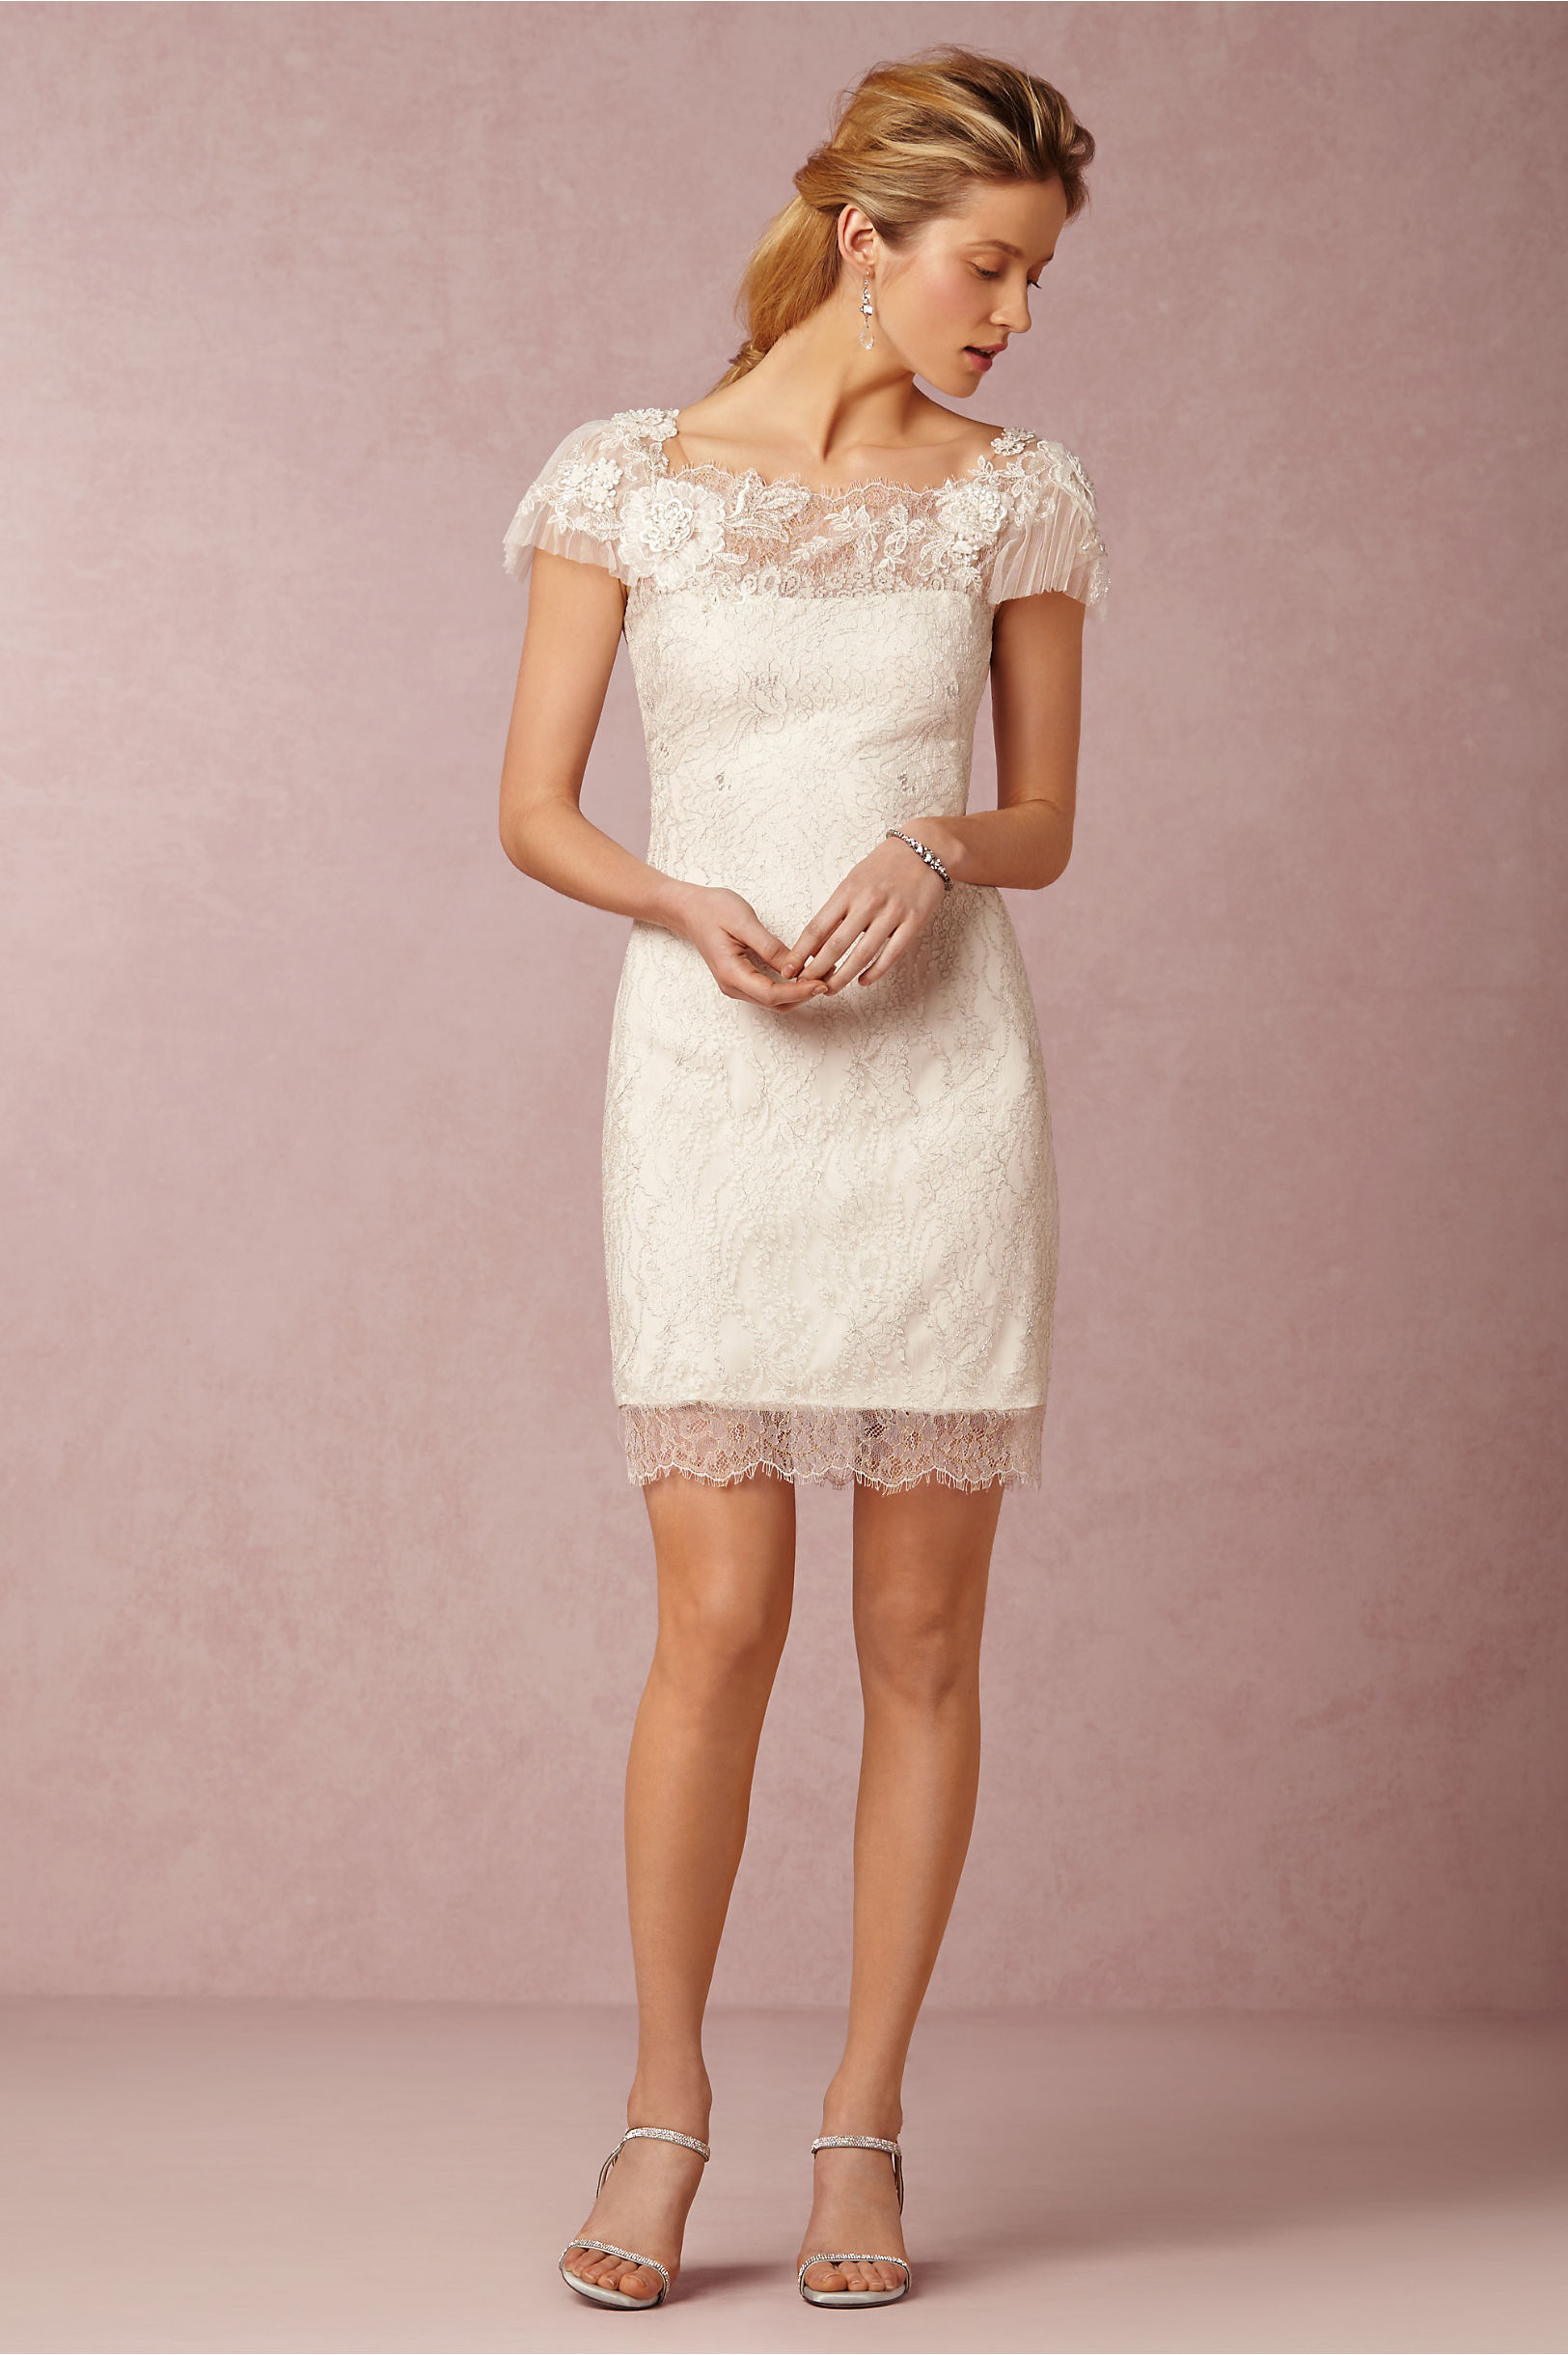 Shined Cocktail Dress in New & Noteworthy | BHLDN